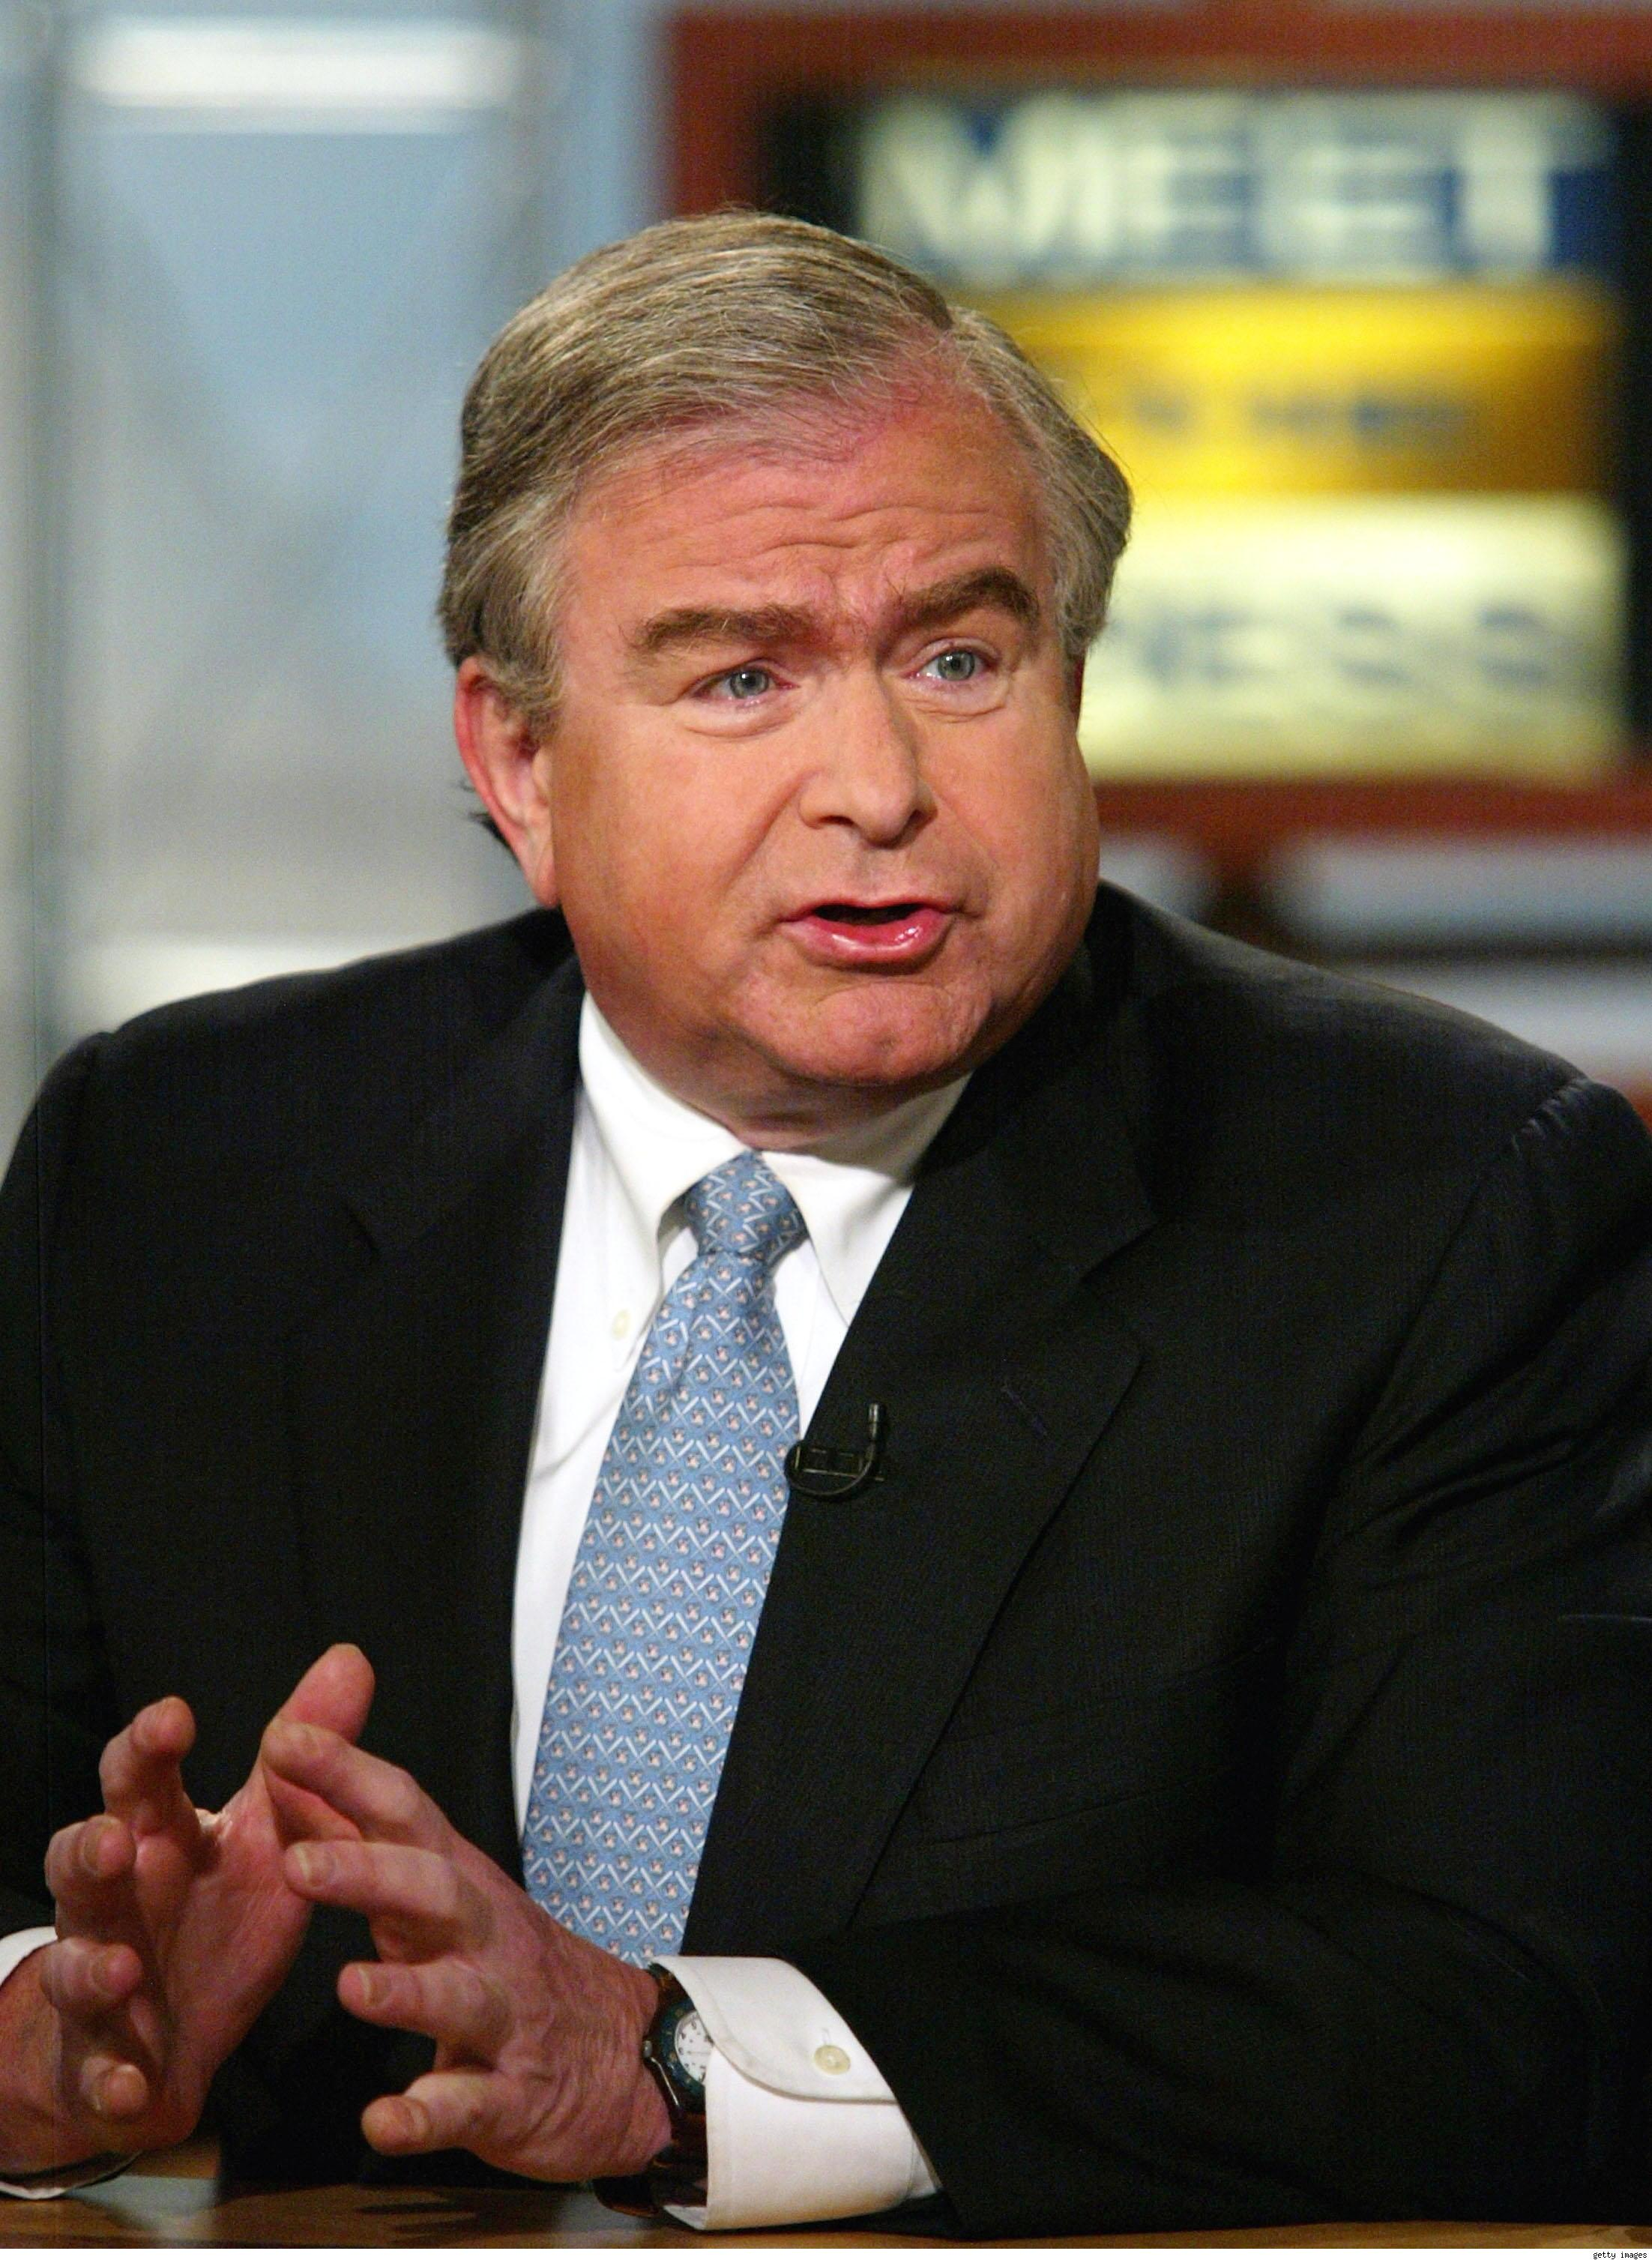 Republicans Blast Sandy Berger - berger